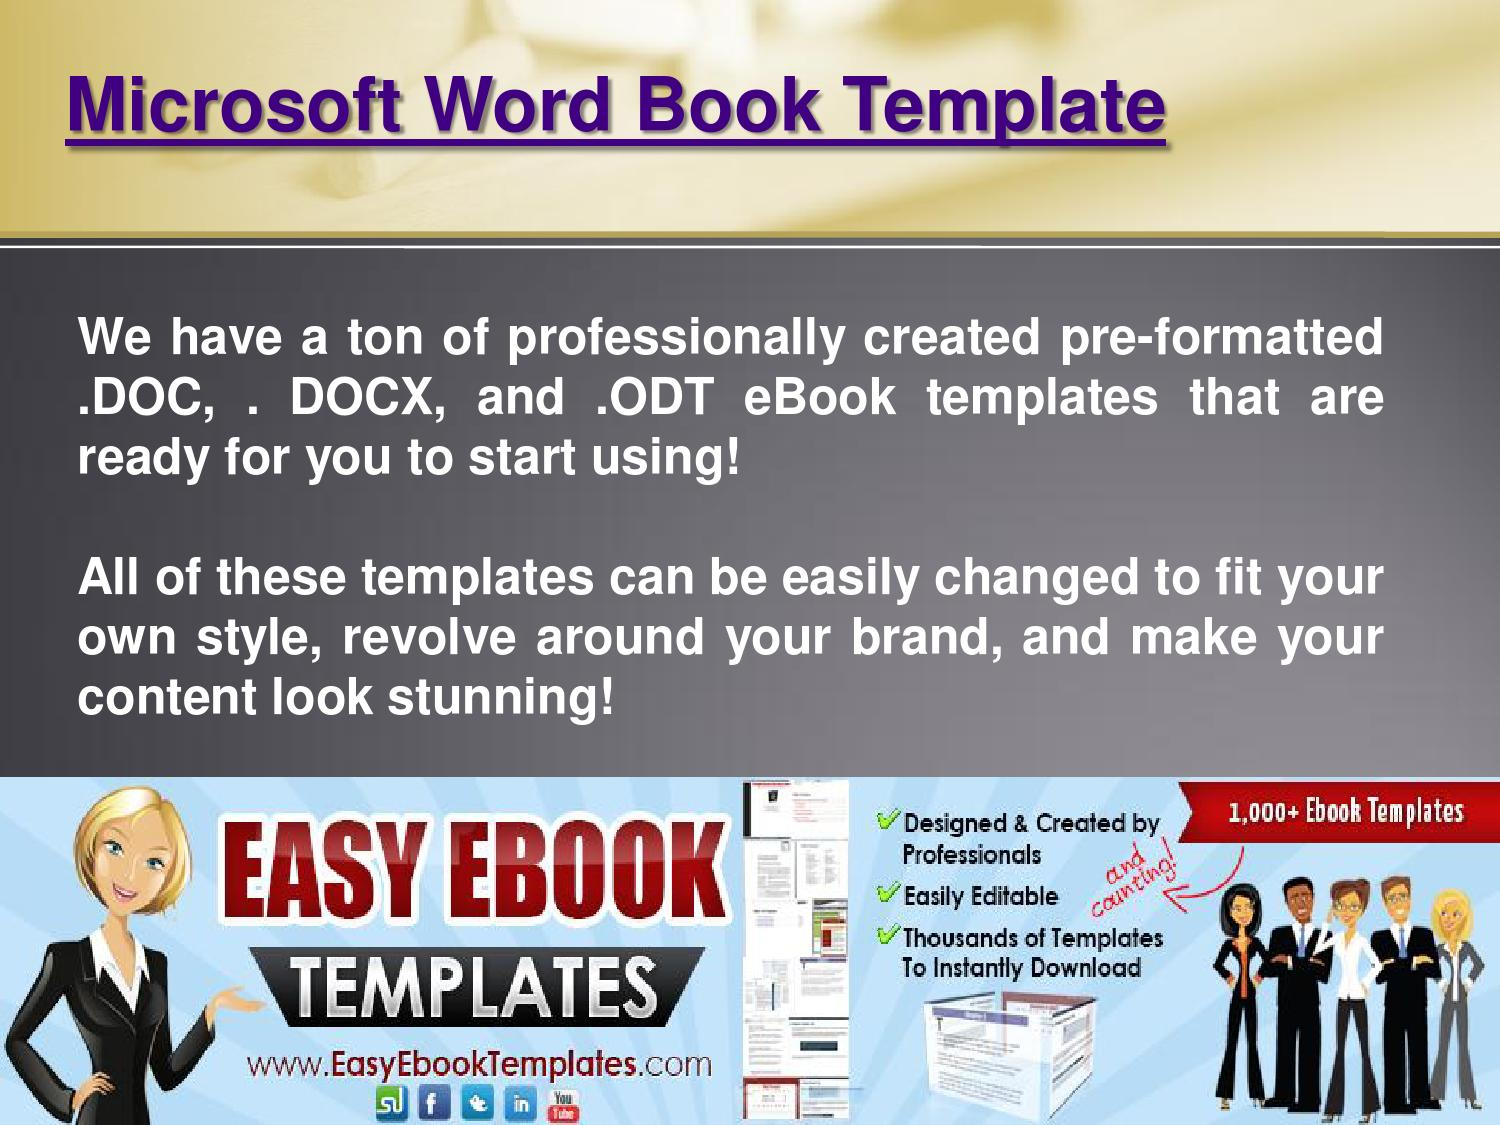 Microsoft Word Book Template By Microsoft Word Book Template Issuu